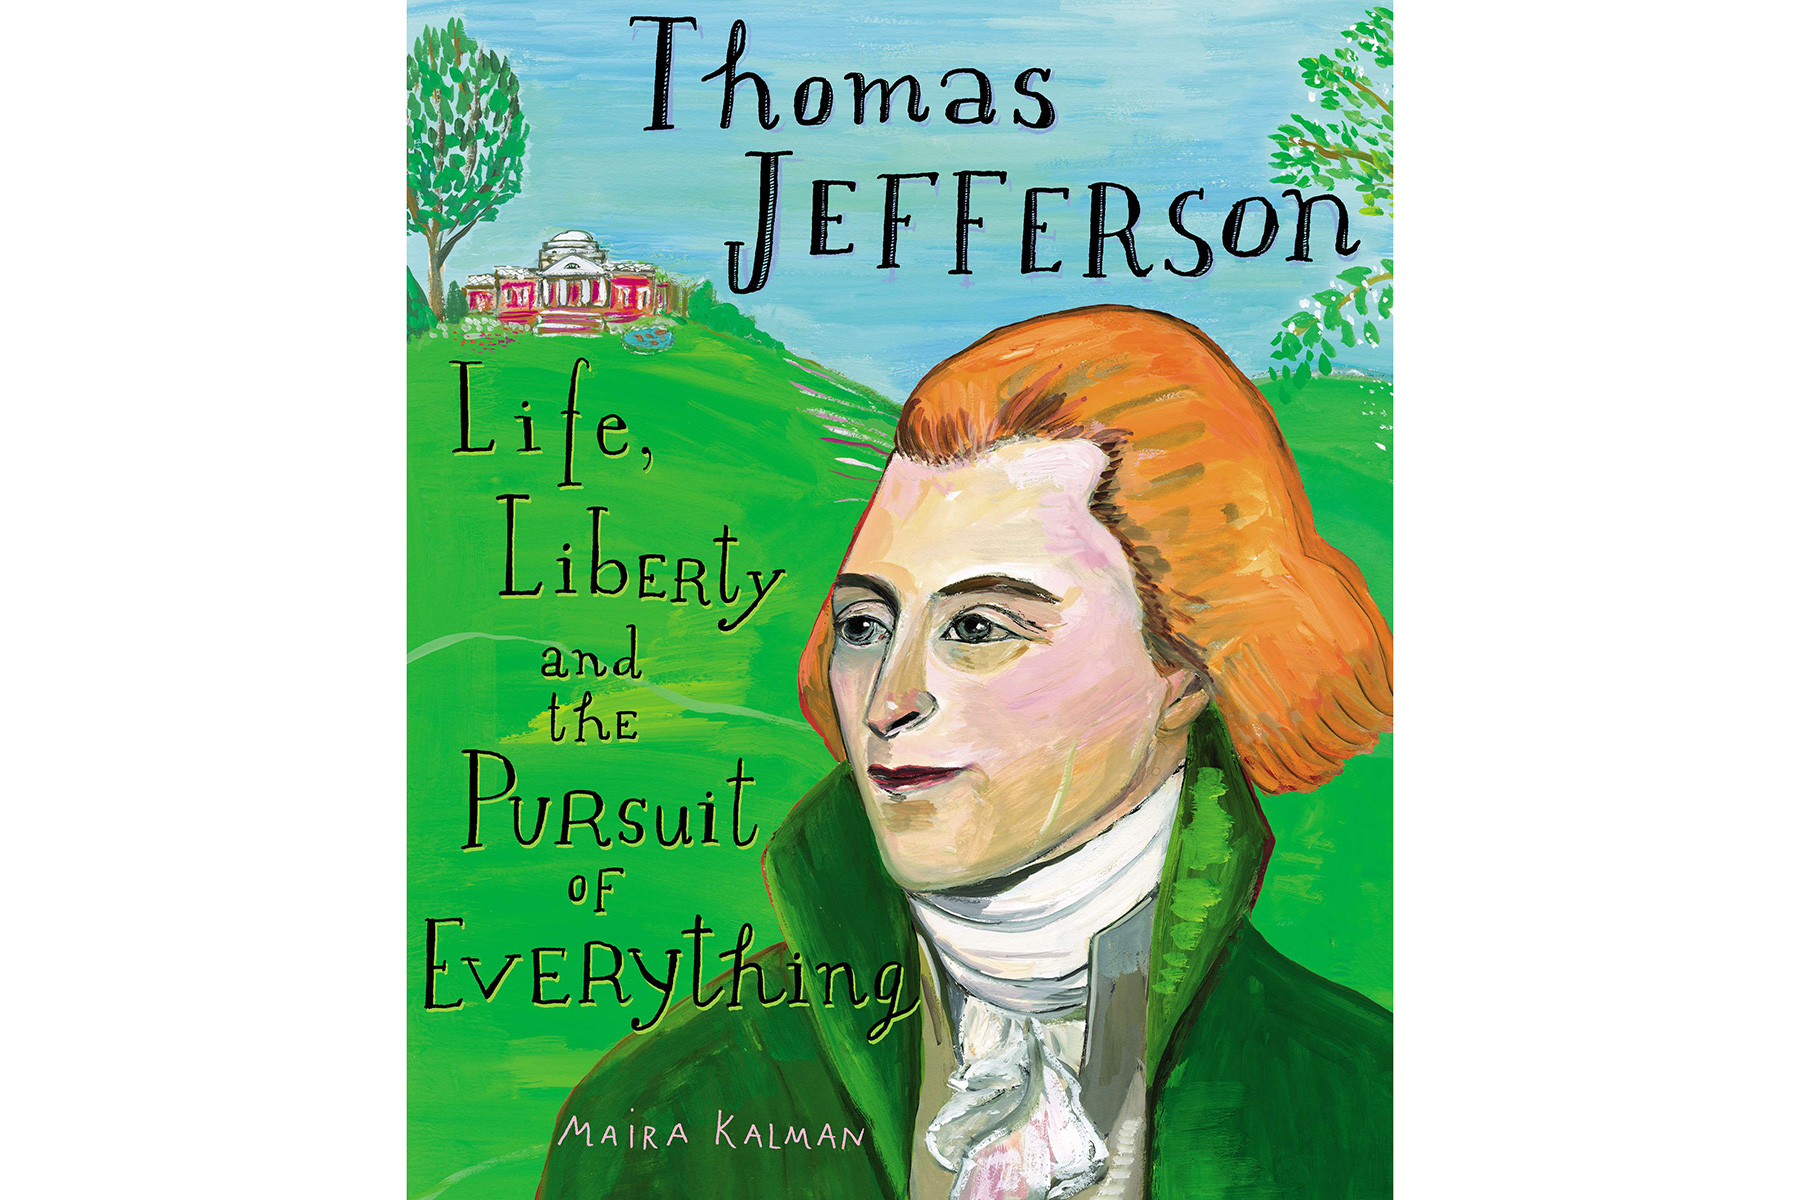 <em>Thomas Jefferson: Life, Liberty and the Pursuit of Everything,</em> by Maira Kalman